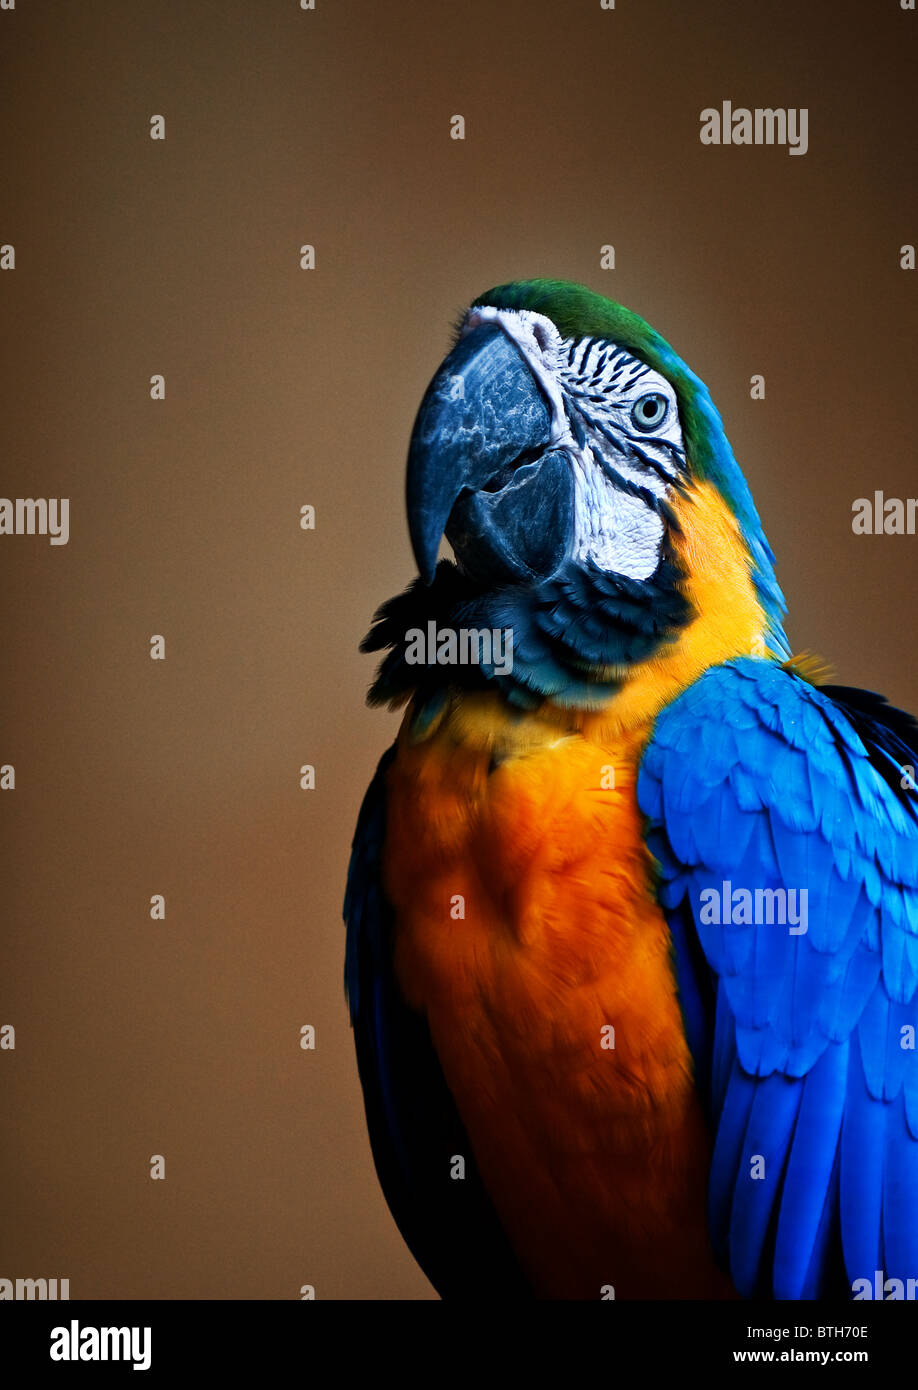 A Blue and Yellow Macaw.  Photo by Gordon Scammell - Stock Image